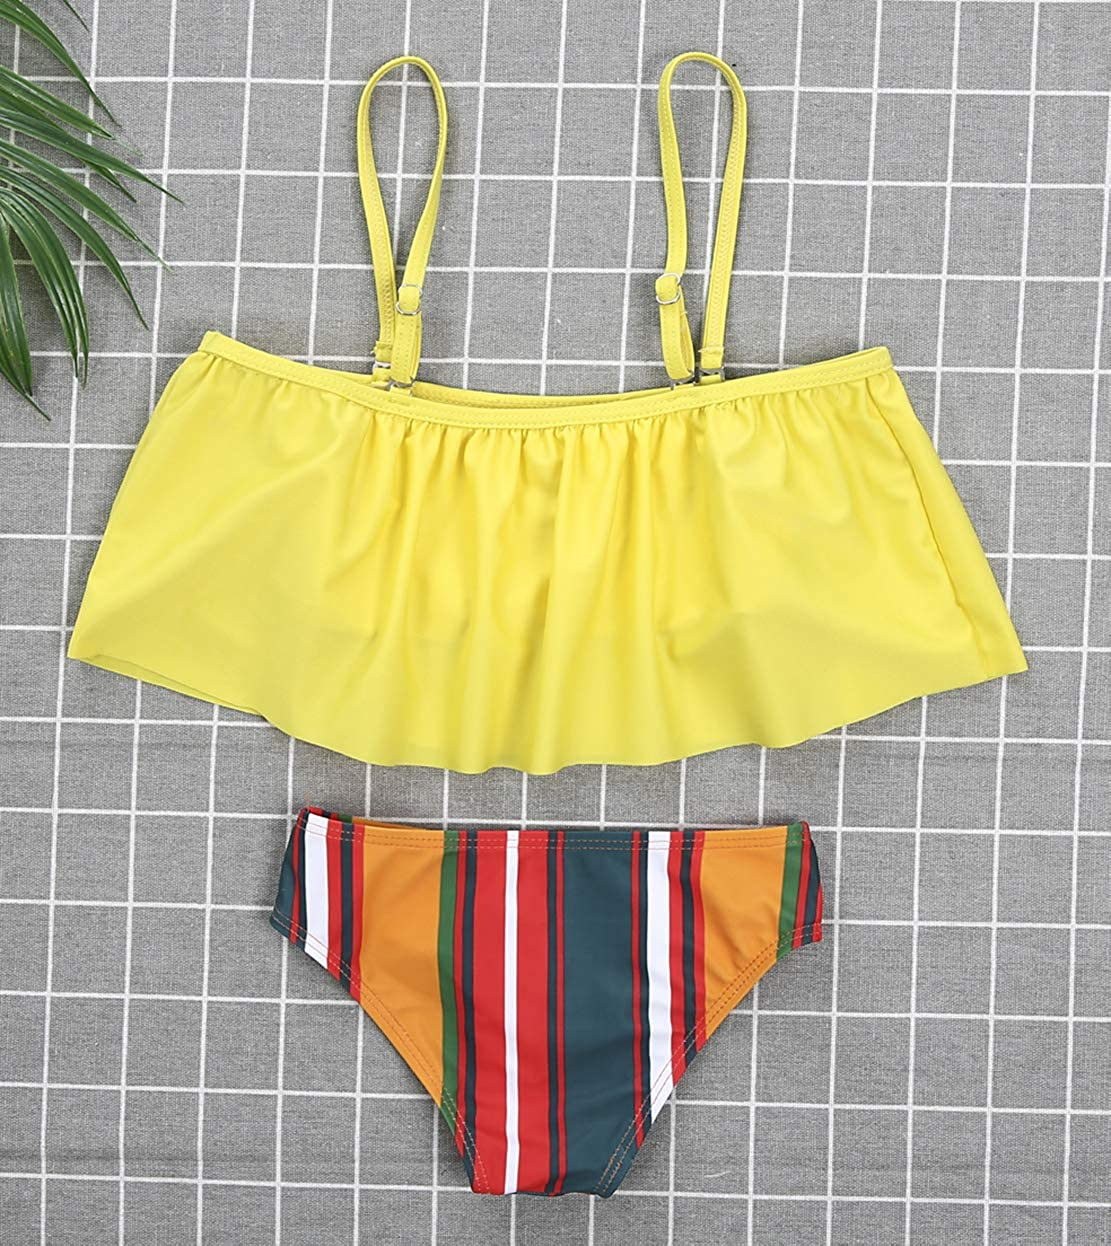 Mommy/&Me 2 Pieces Off Shoulder Bathing Suit Family Matching Spaghetti Straps Solid Yellow Tops+Striped Bottoms